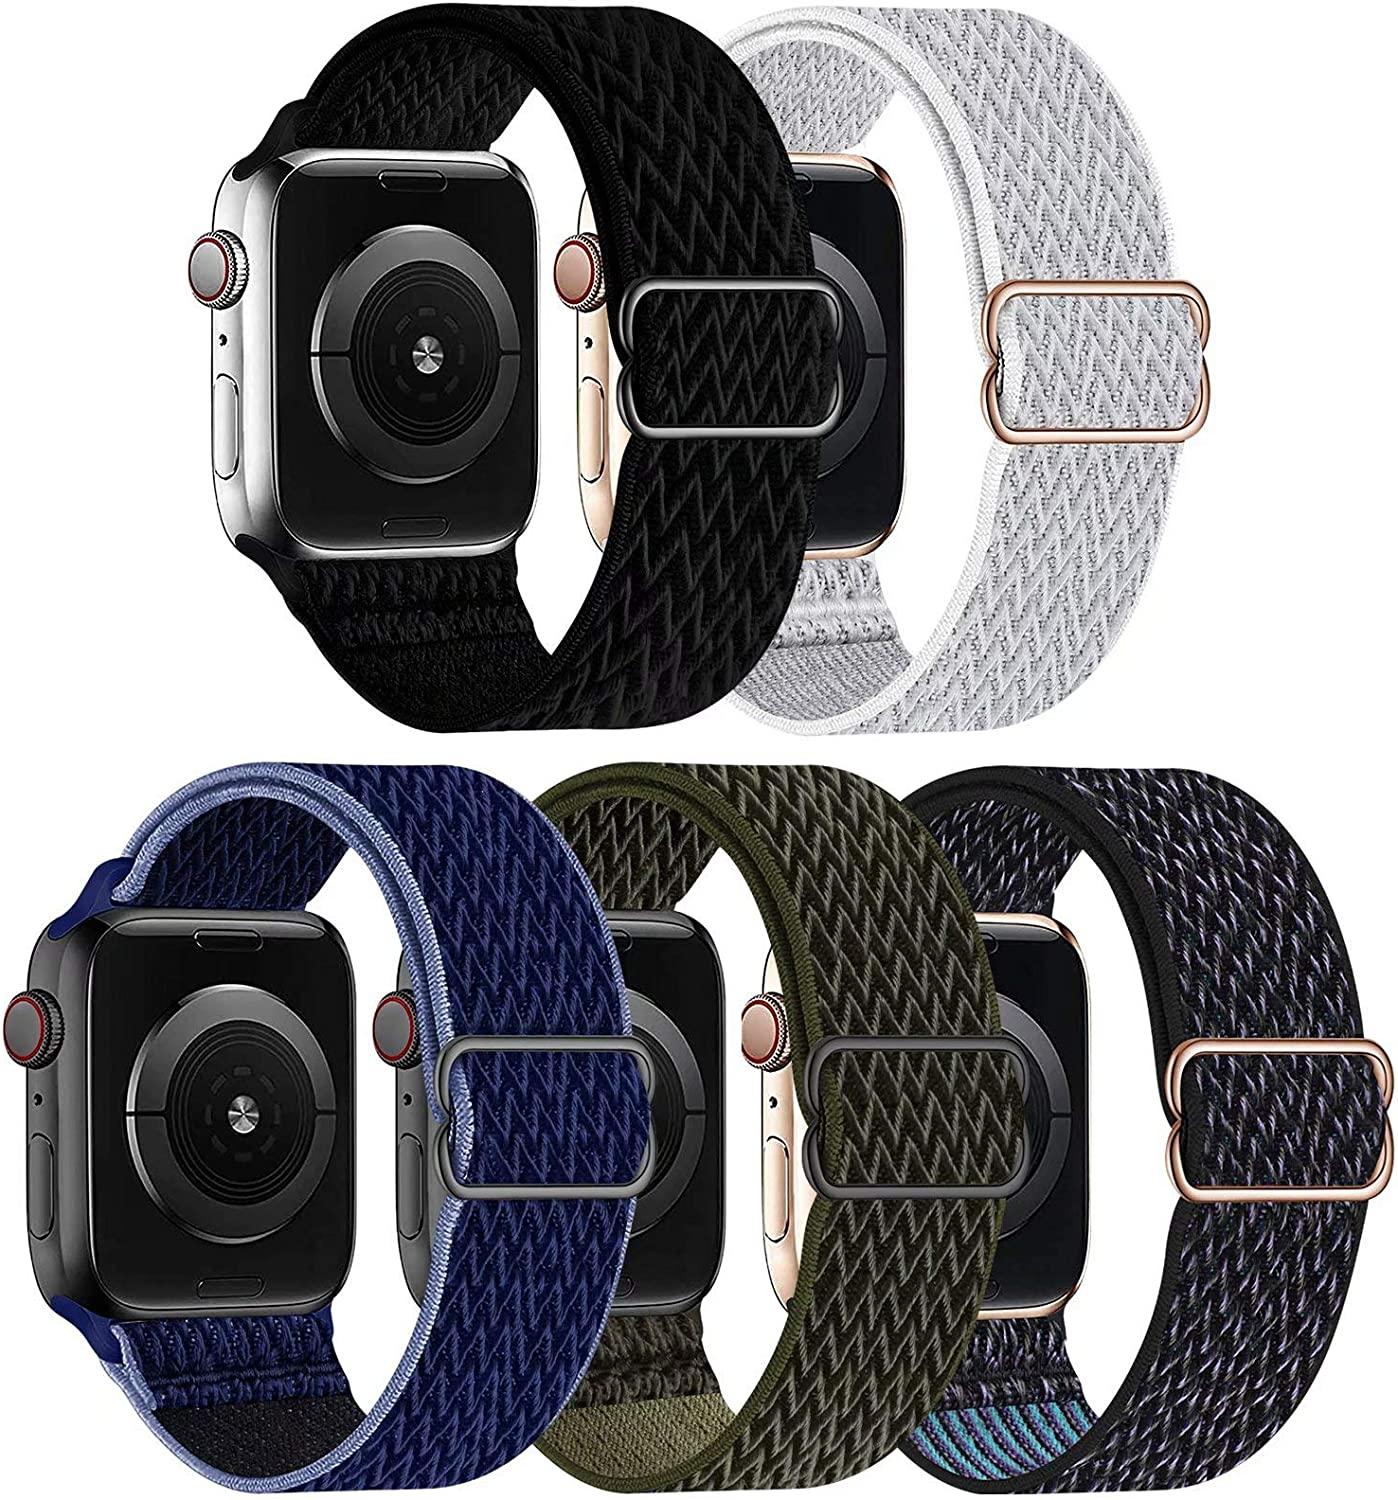 GBPOOT 5 Packs Nylon Stretch Band Compatible with Apple Watch Bands,Adjustable Soft Sport Breathable Loop for Iwatch Series 6/5/4/3/2/1/SE,Black/Seashell/Midnight Blue/Cargo Khaki/Hyper Grape,38/40mm